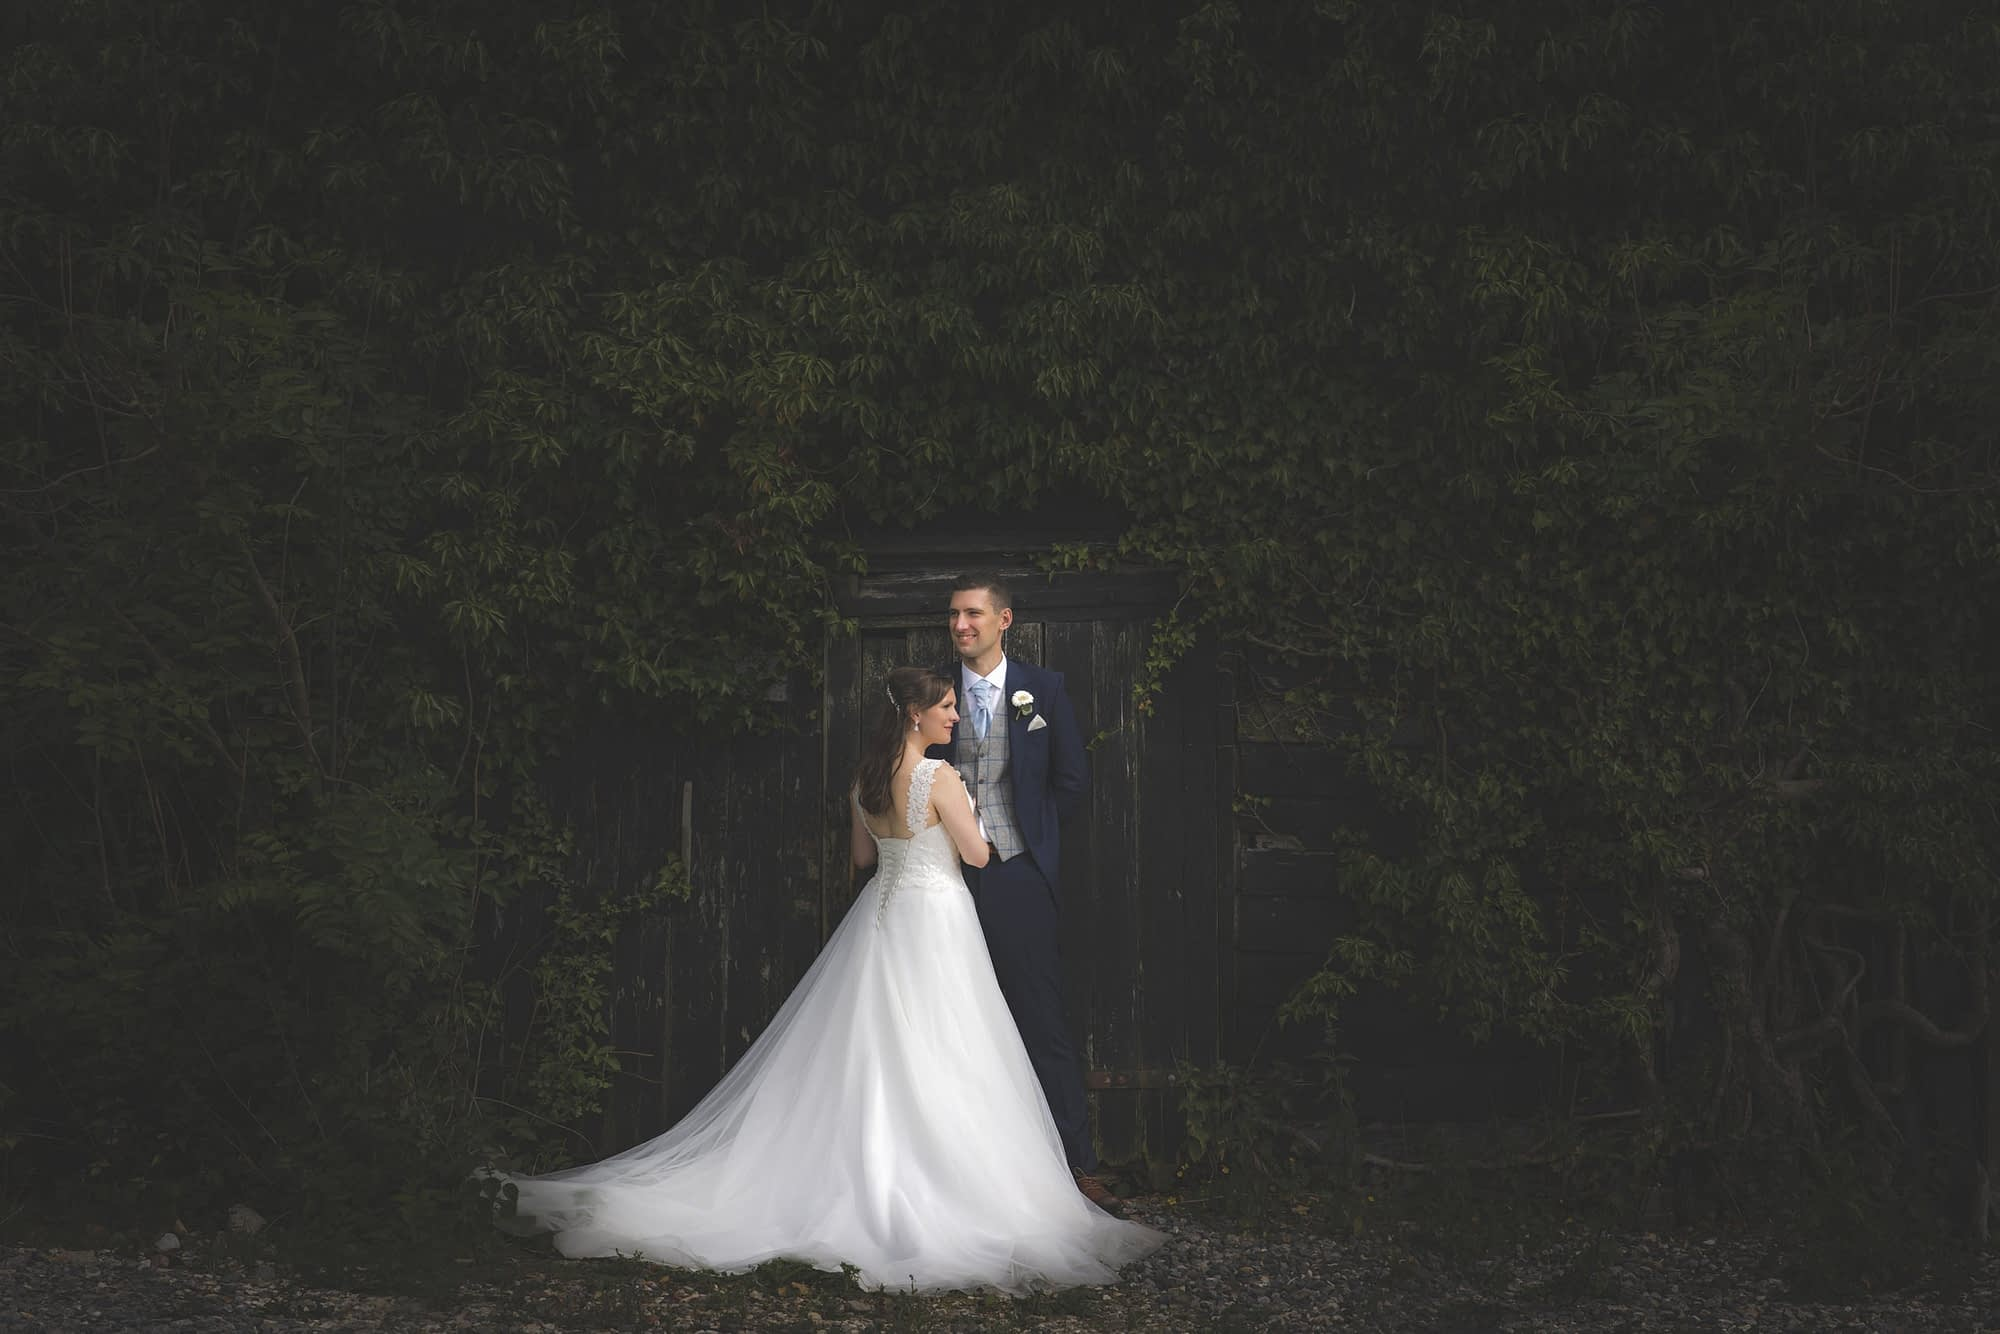 couple standing together in front of green bush